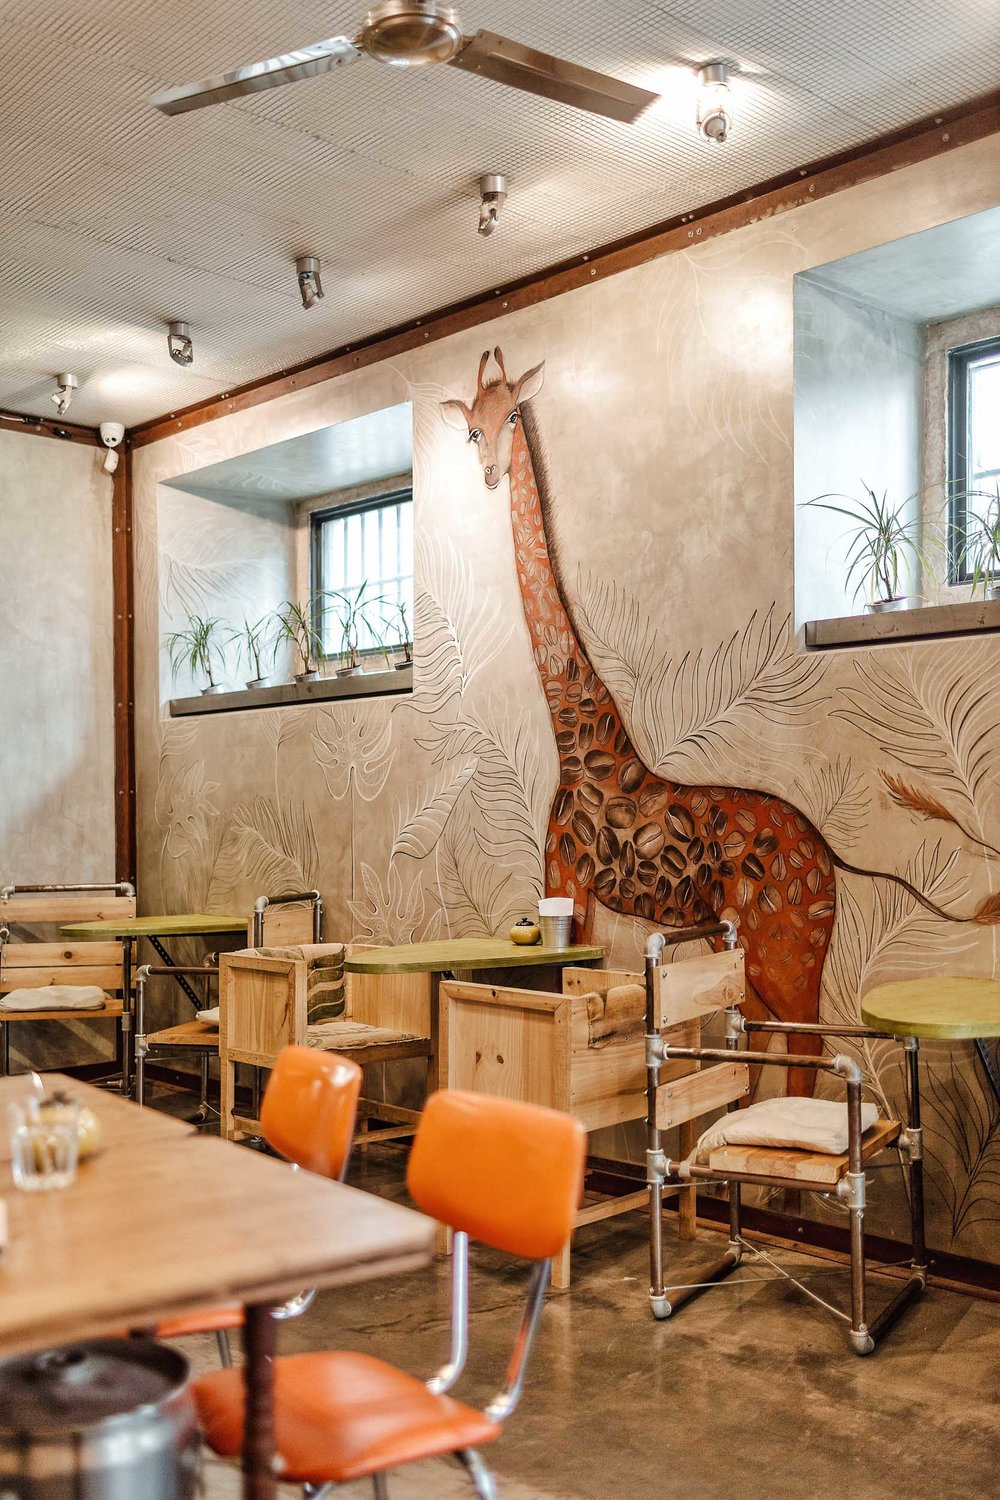 The interior of Fabrica Coffee Rosters in Lisbon.  The giraffe's spots are coffee beans!